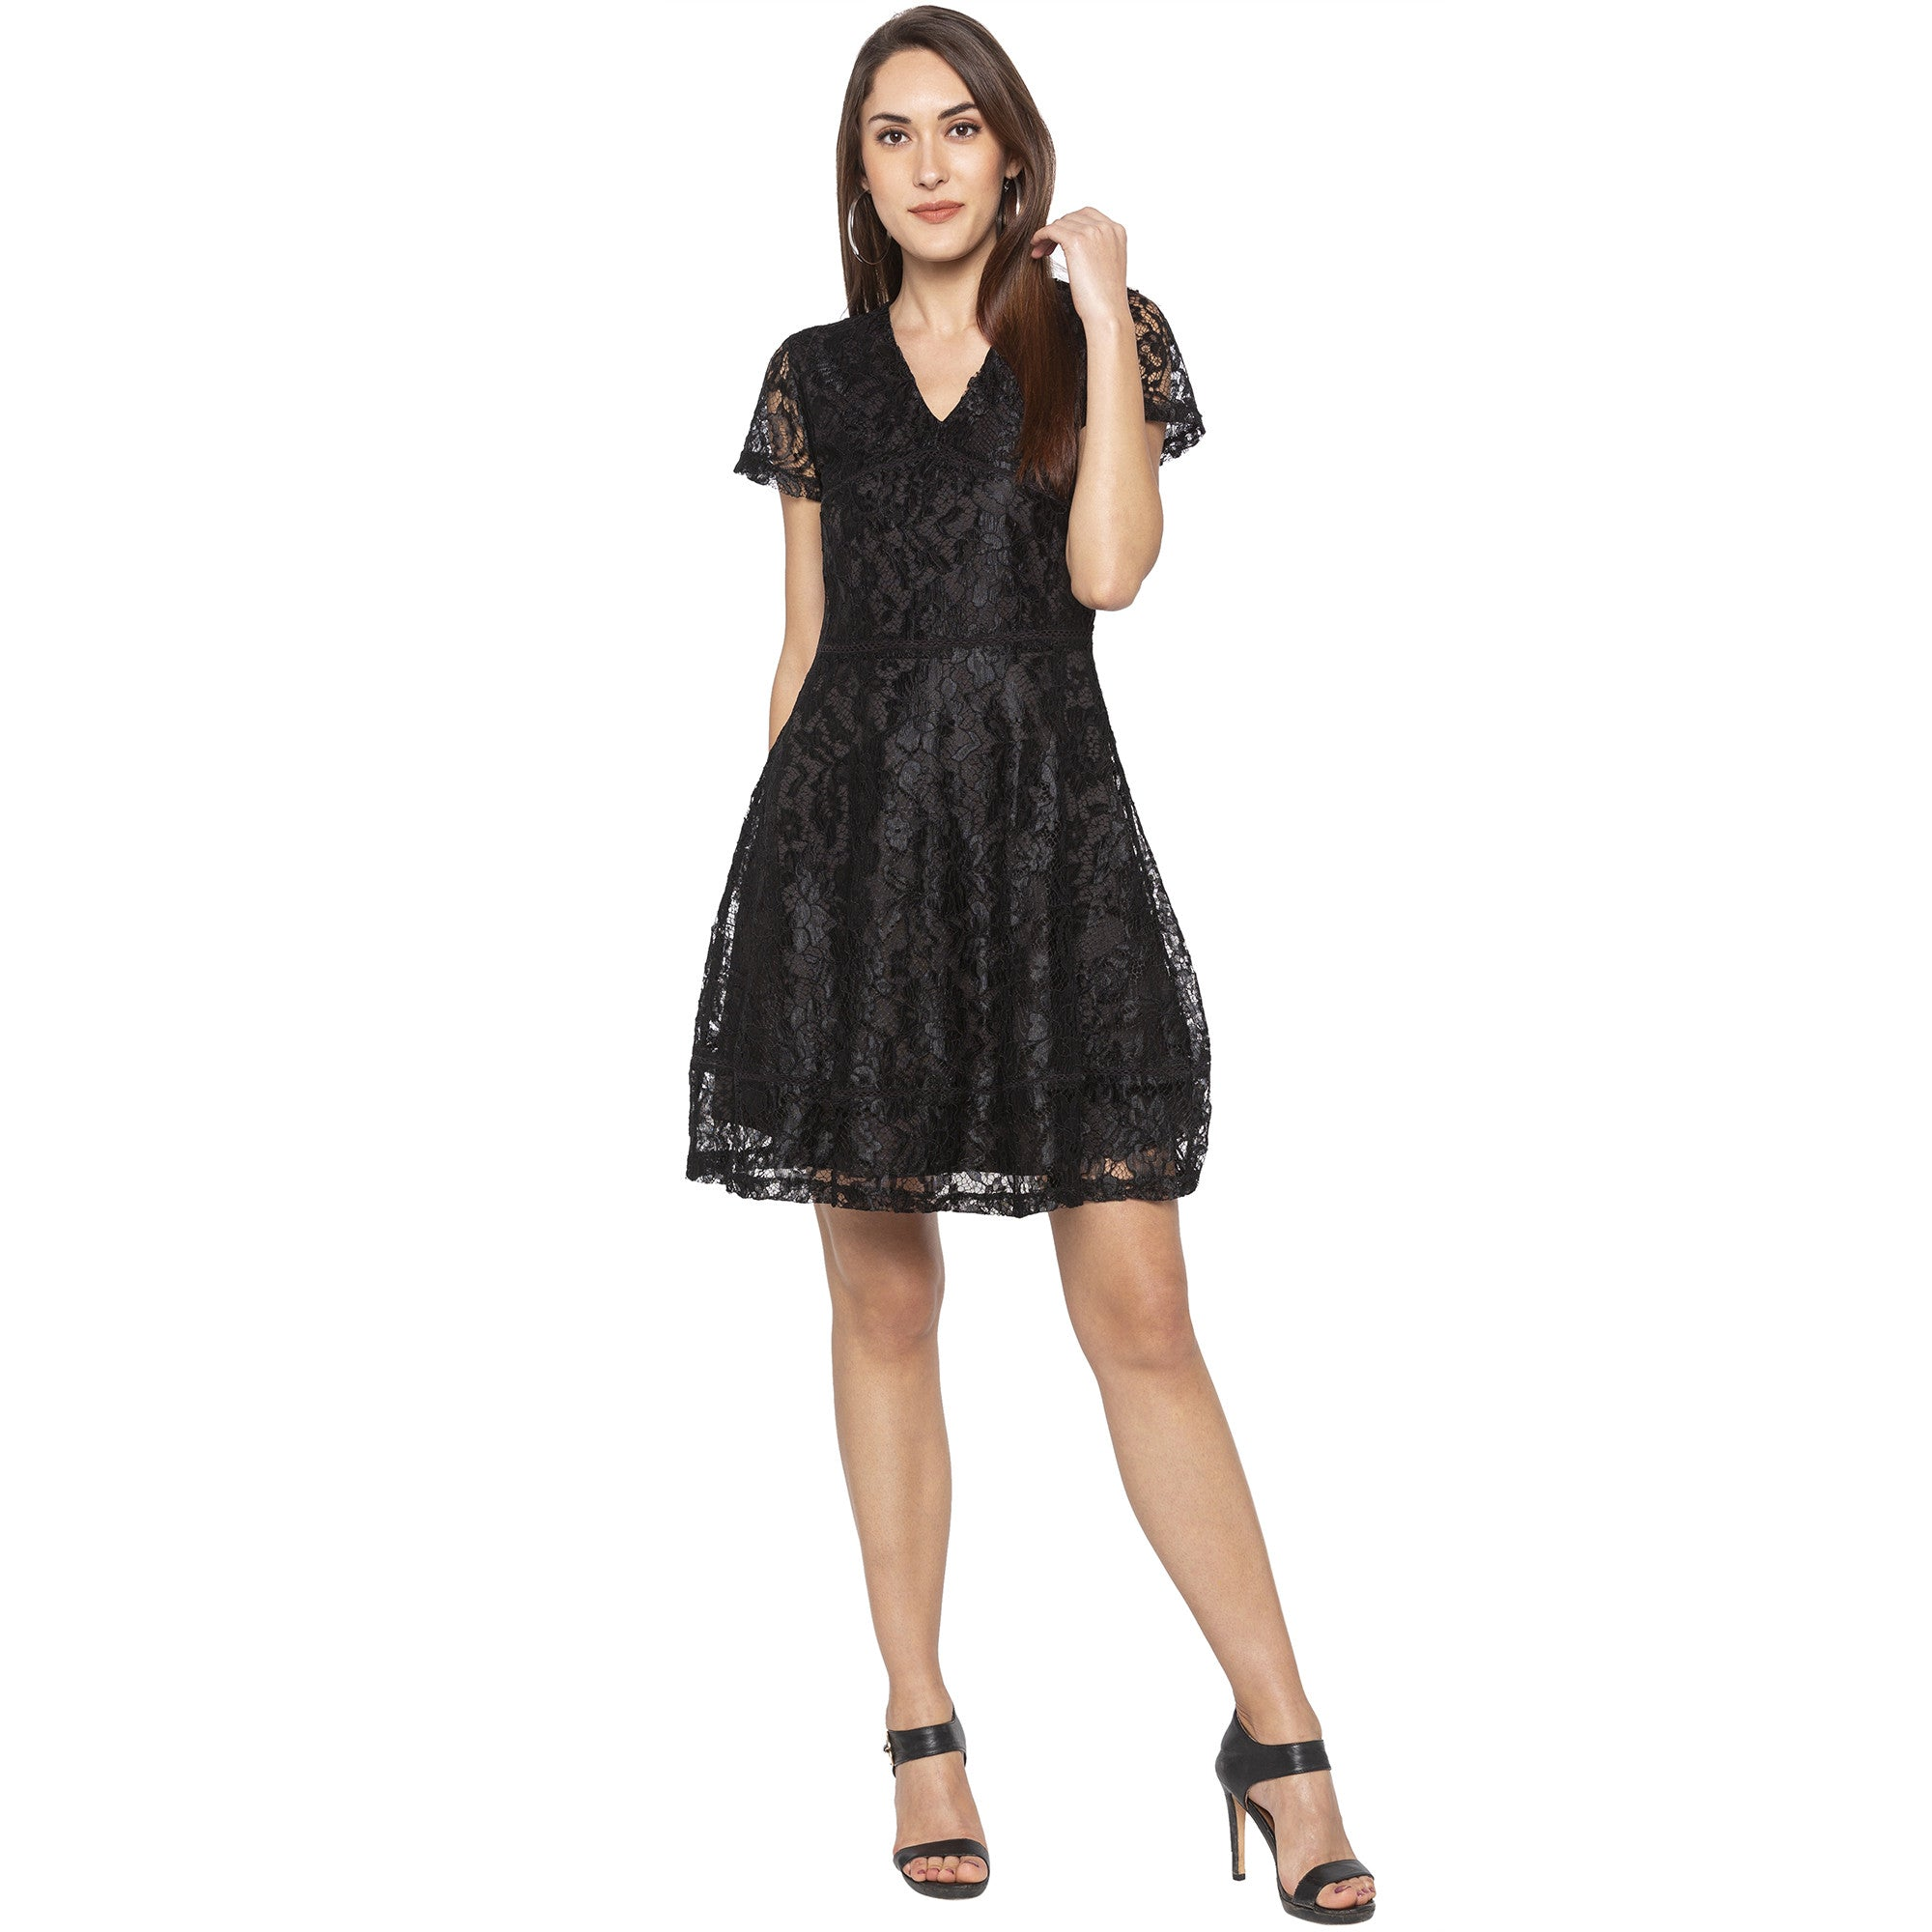 Party Black Color Self Design Fit and Flare Dress-4